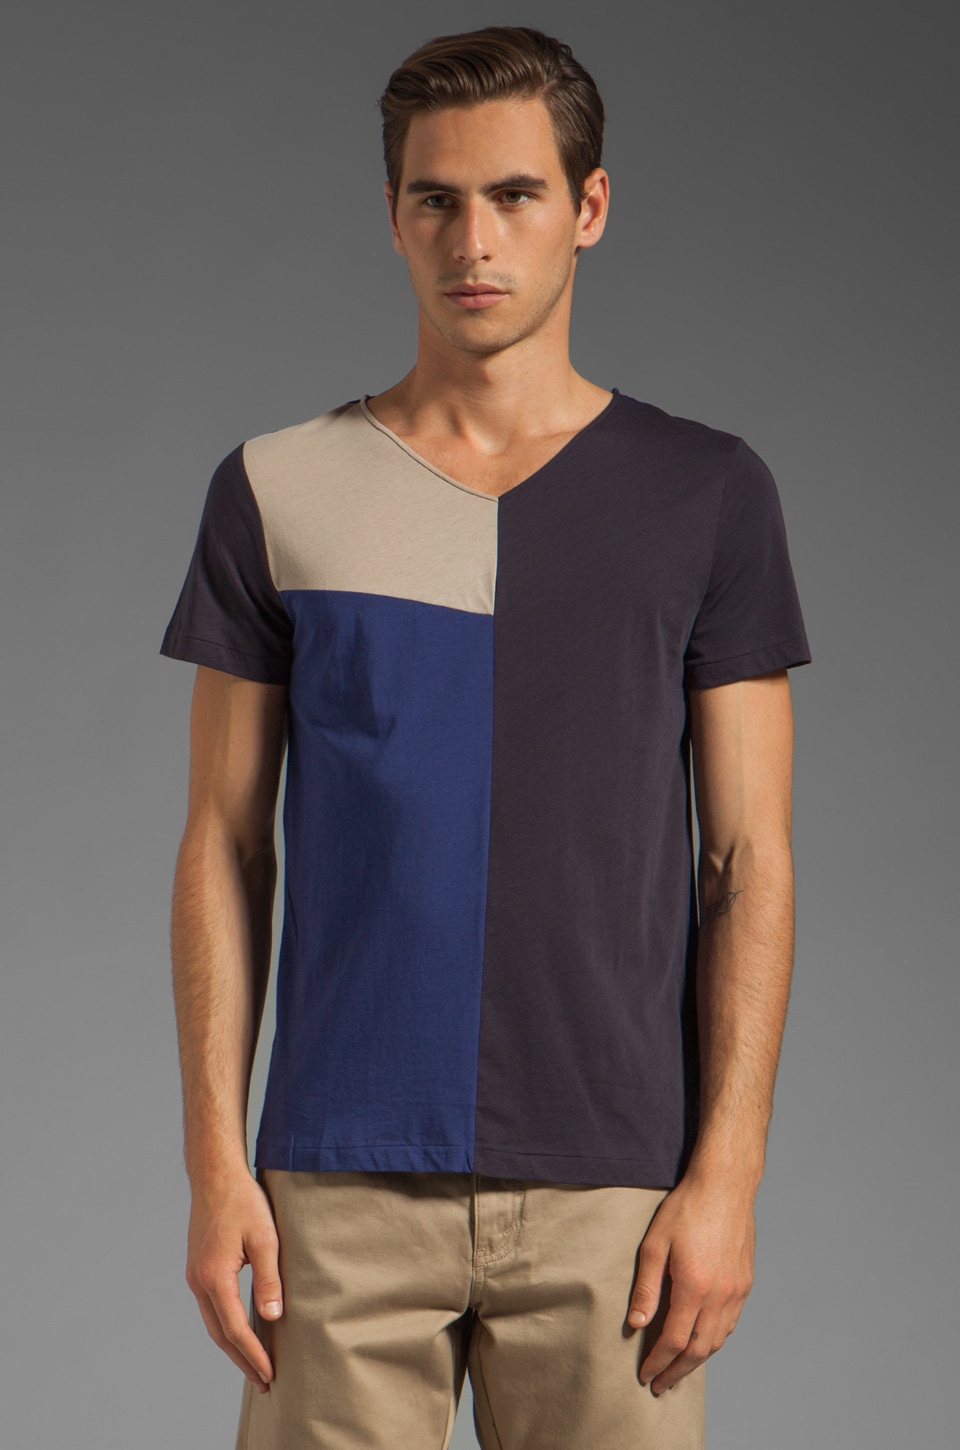 J. Lindeberg Mykola Block Prime Jersey Tee in Dark Blue/Purple